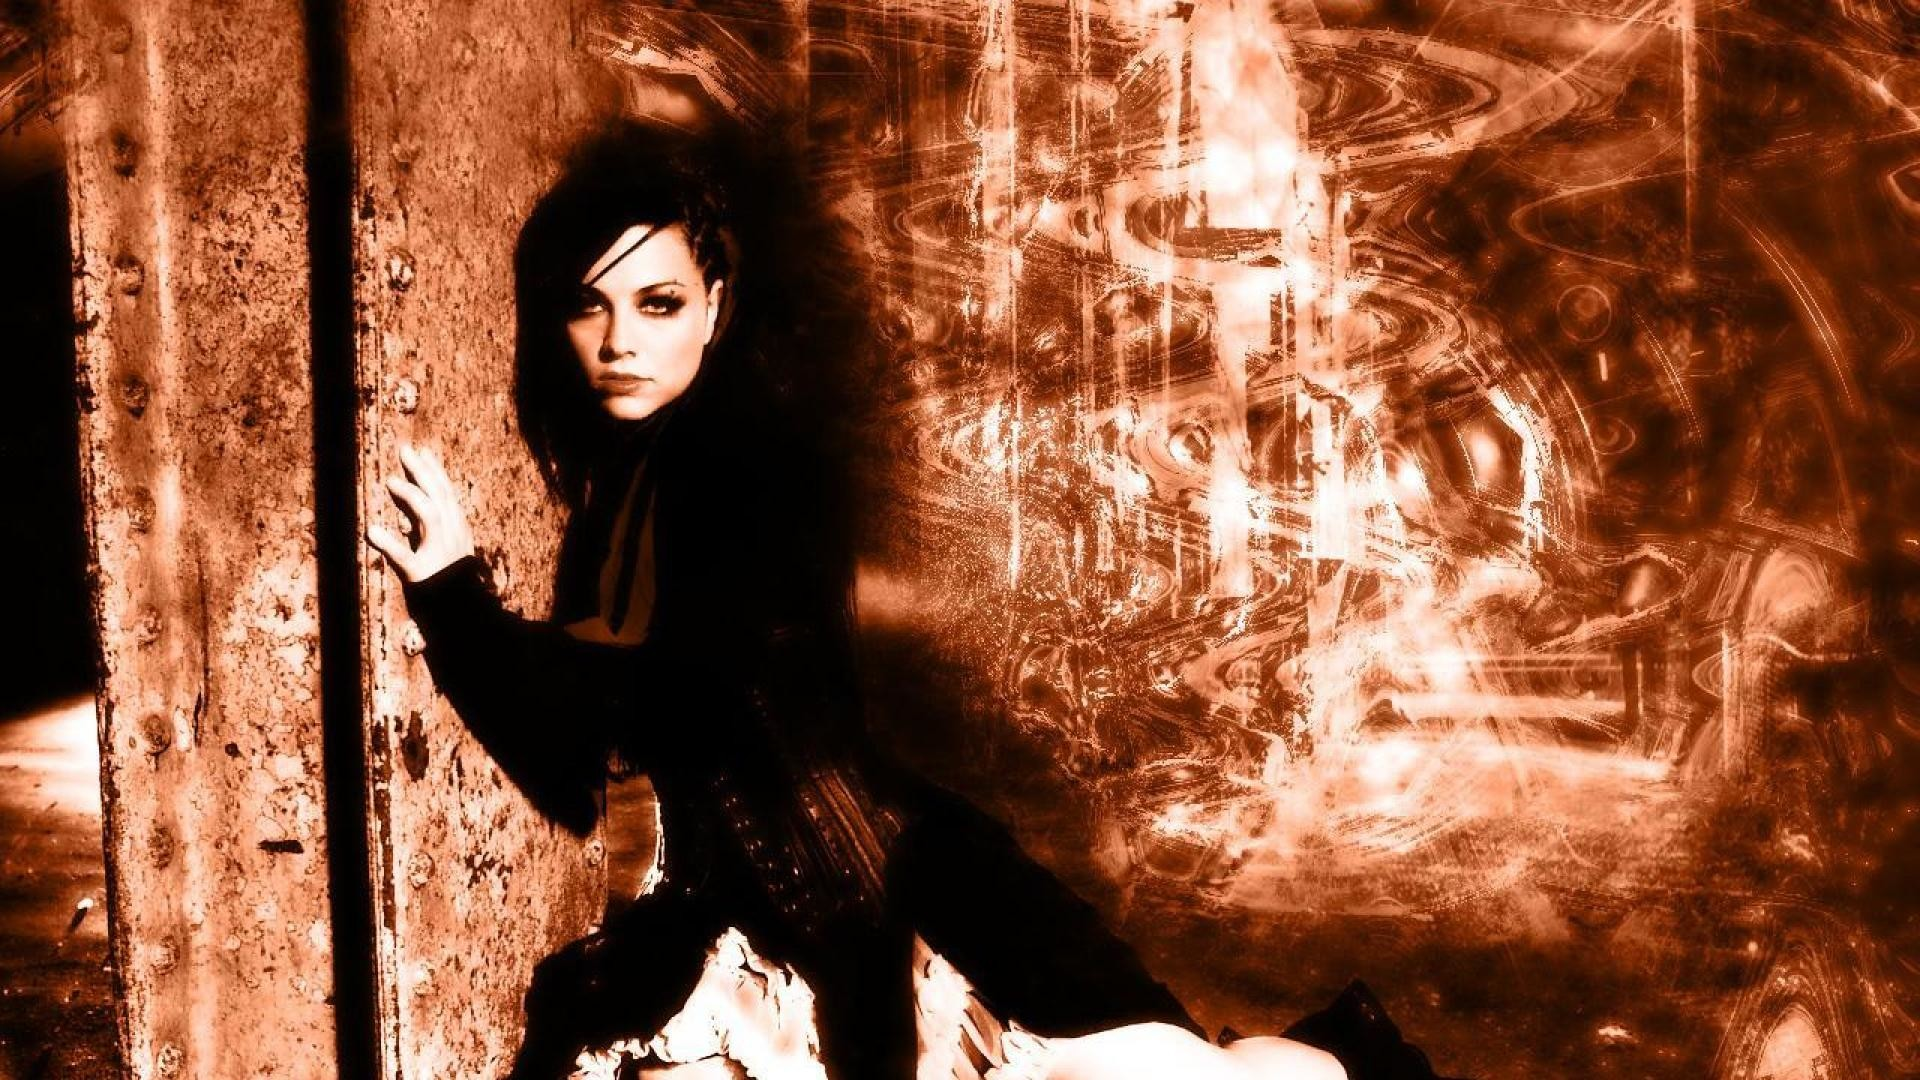 EVANESCENCE AMY LEE HD WALLPAPER – (#24298) – HD Wallpapers .